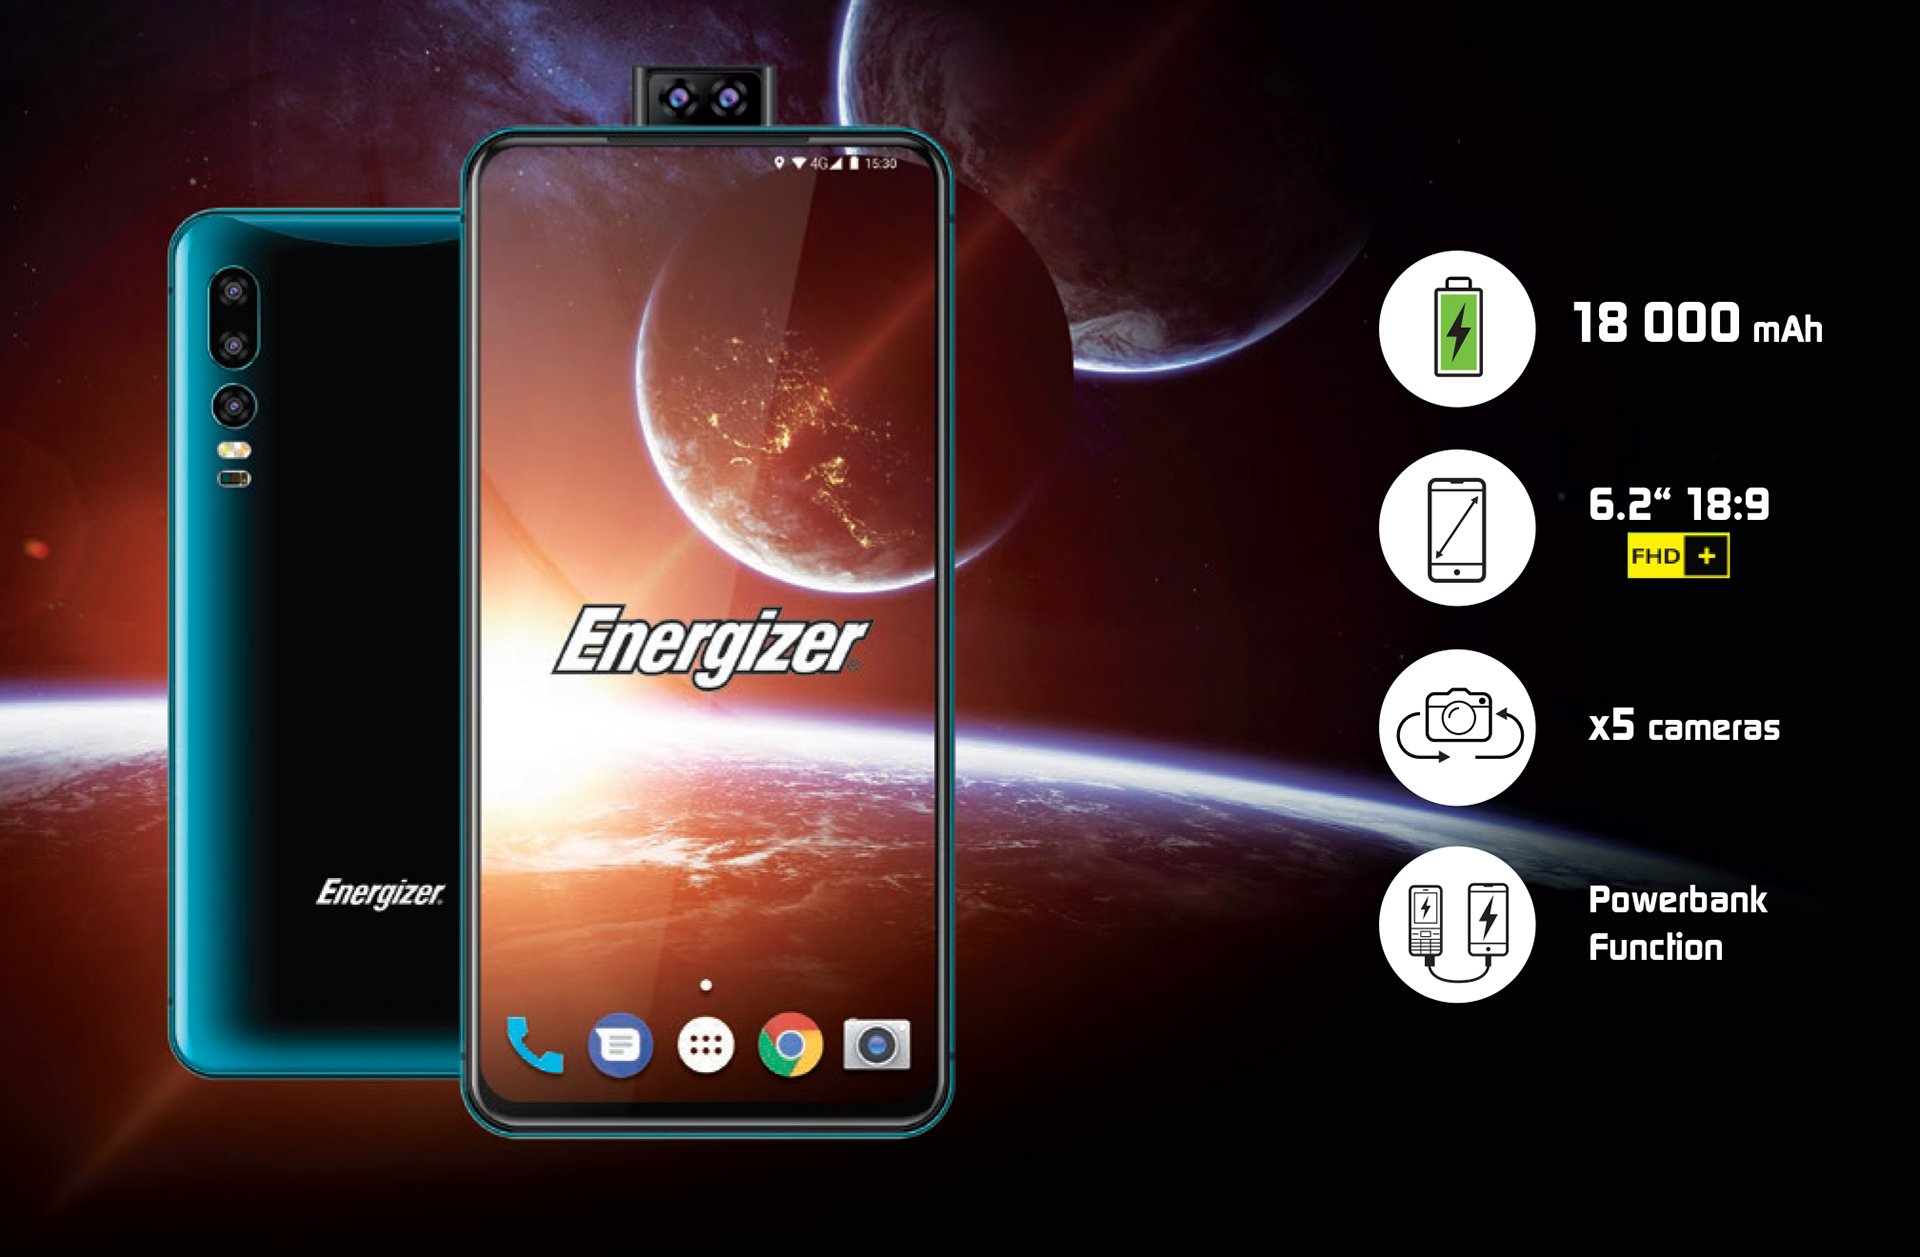 Energizers Smartphone With An 18000 MAh Battery Is Thick Shacknews